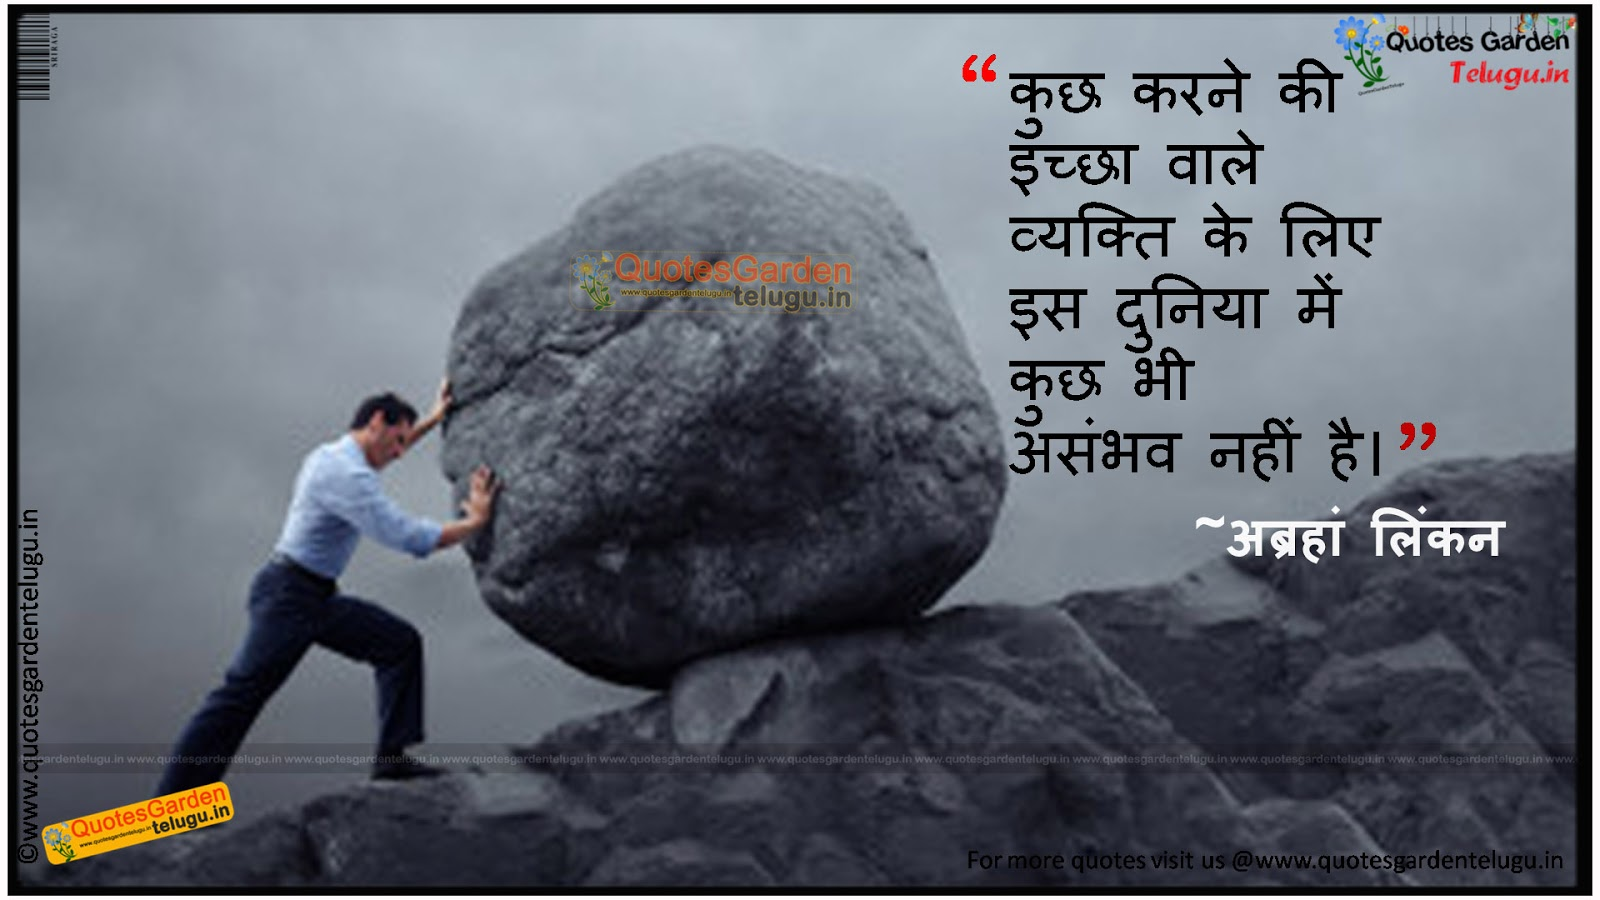 Best Inspirational Quotes In Hindi 1220 Quotes Garden Telugu